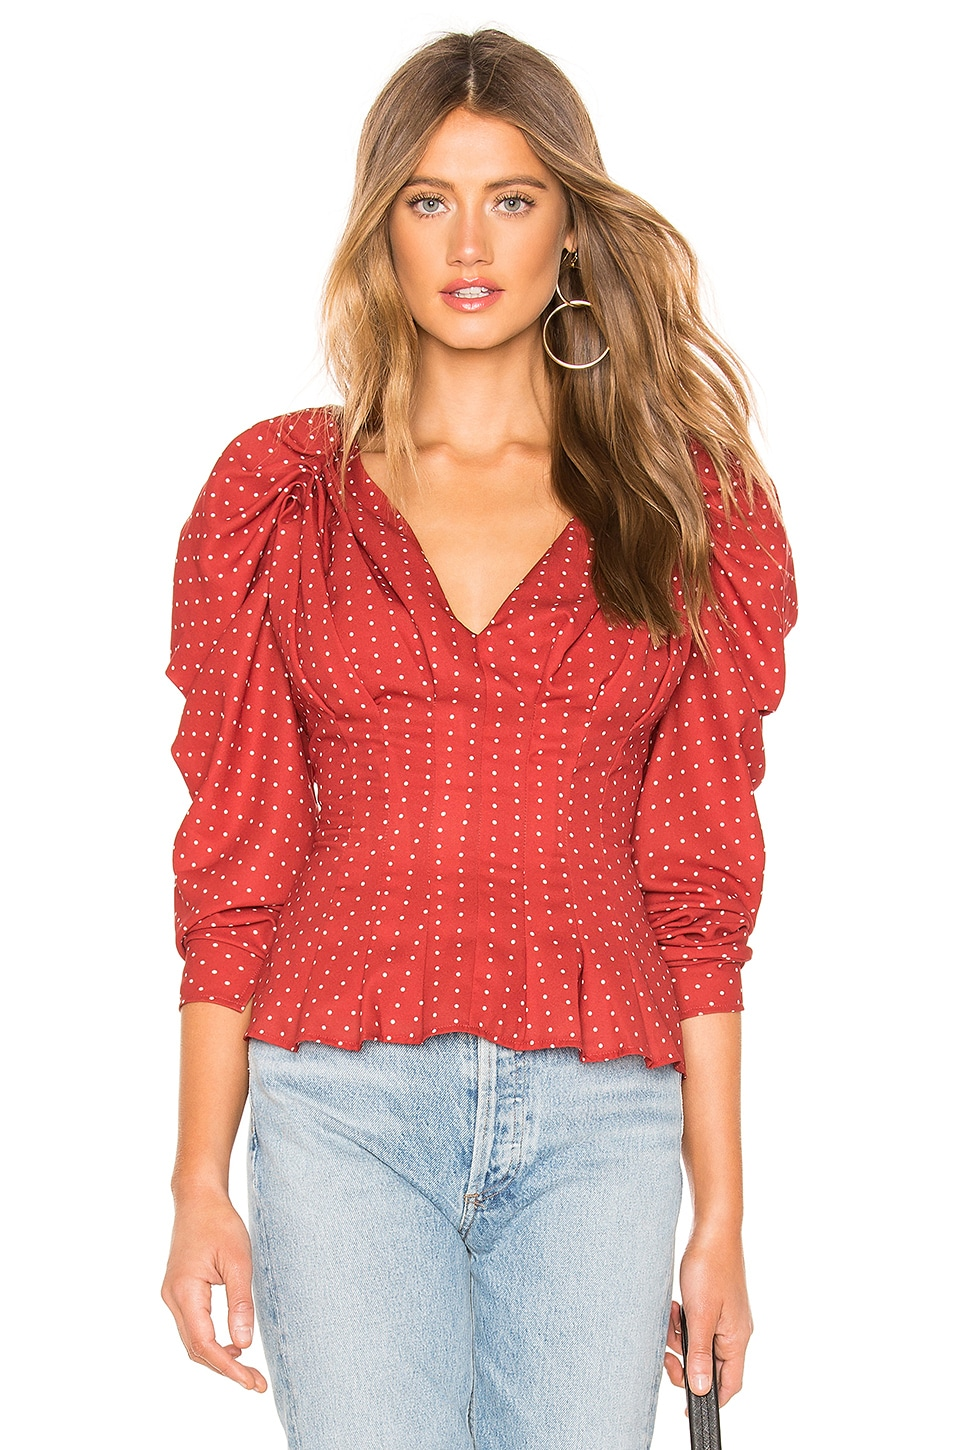 C/MEO Vices Long Sleeve Top in Red Spot